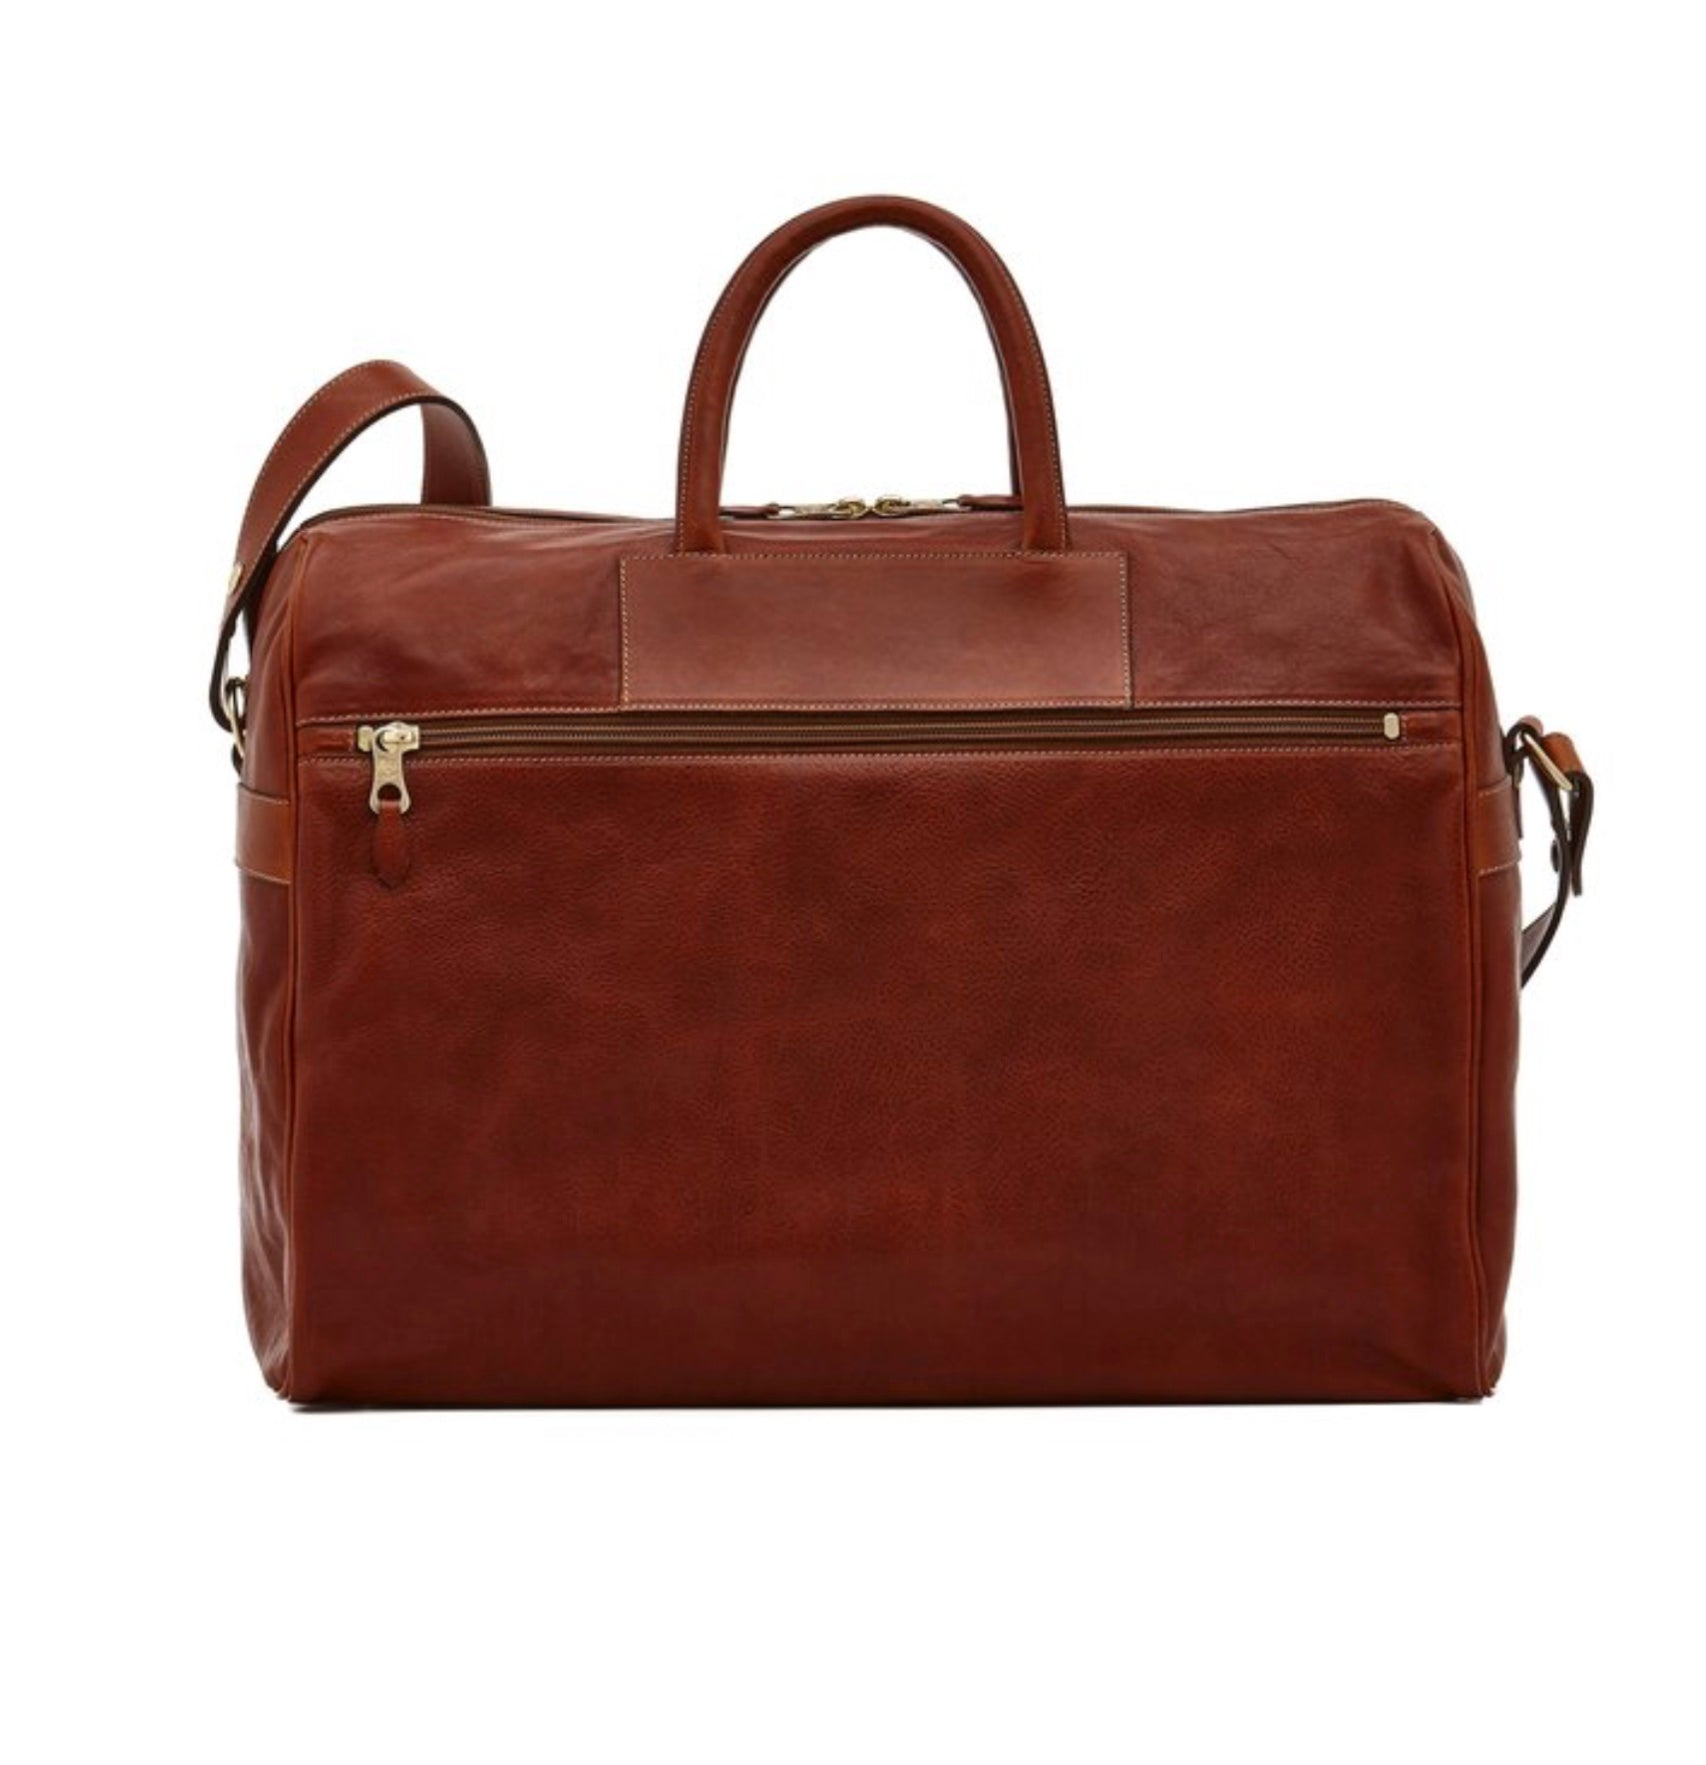 Sepia Traveling Bag by Il Bisonte